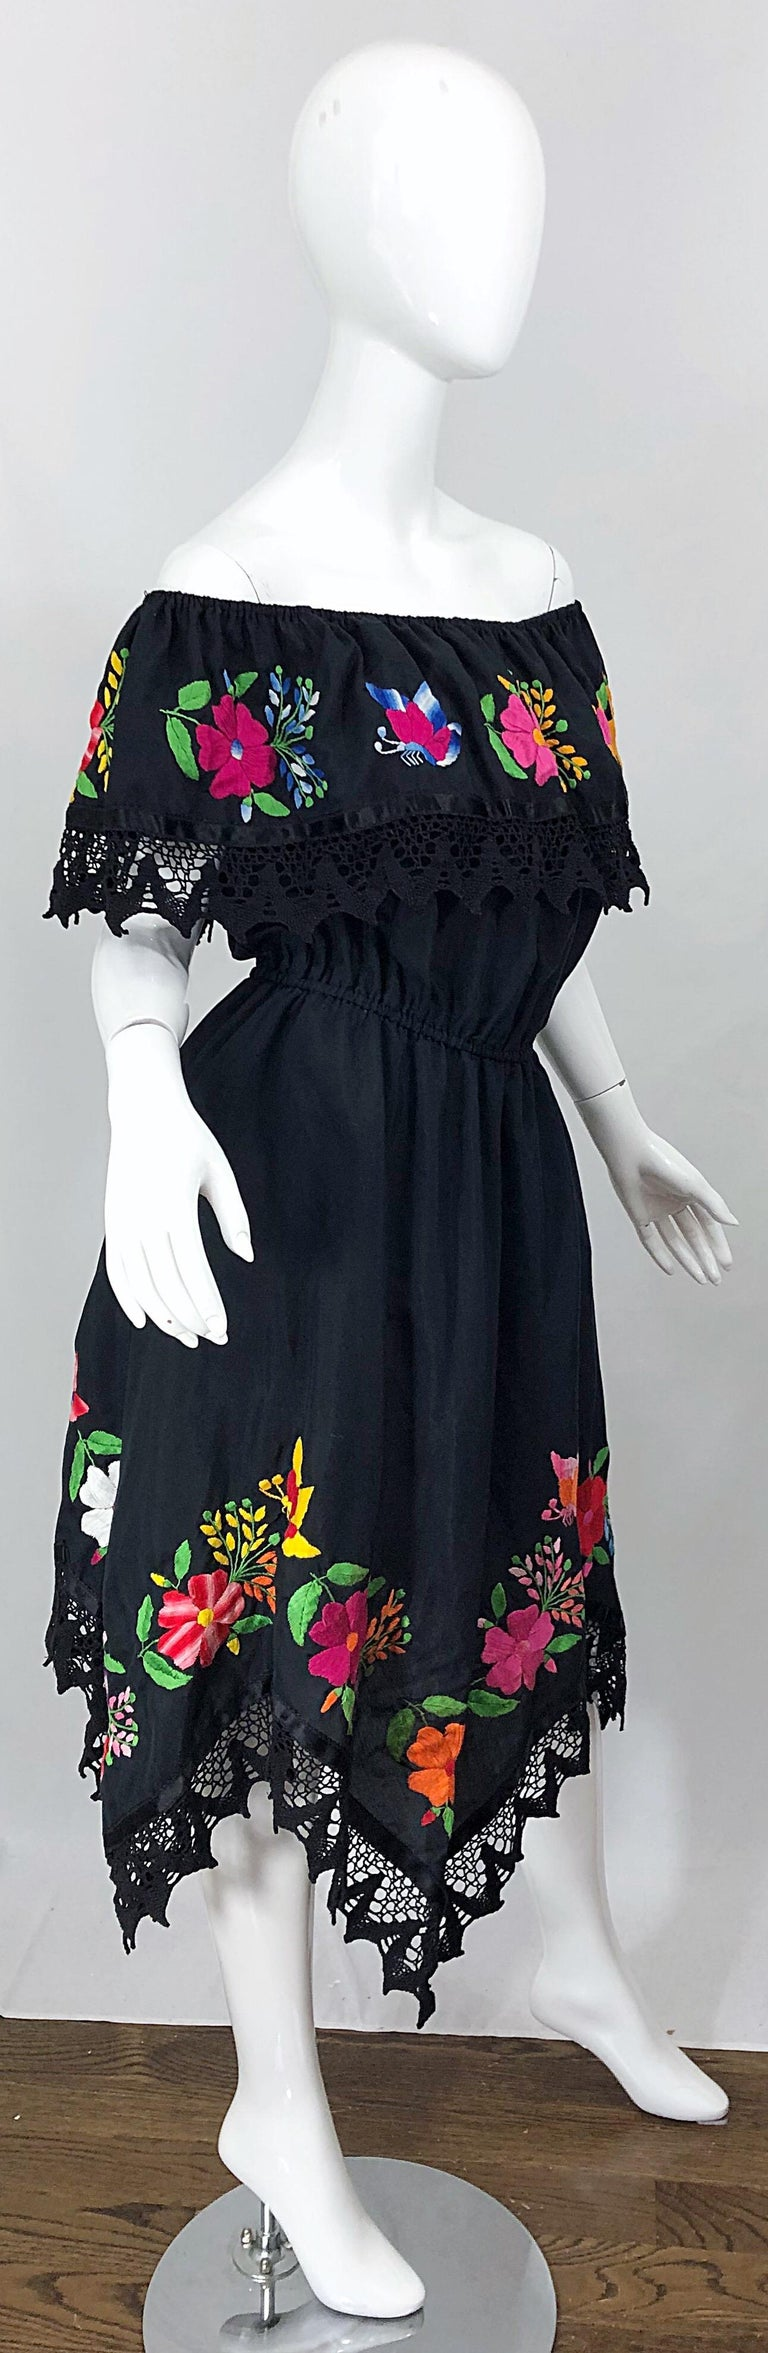 1970s Boho Chic Black Colorful Cotton Embroidered Handkerchief Hem Vintage Dress For Sale 3